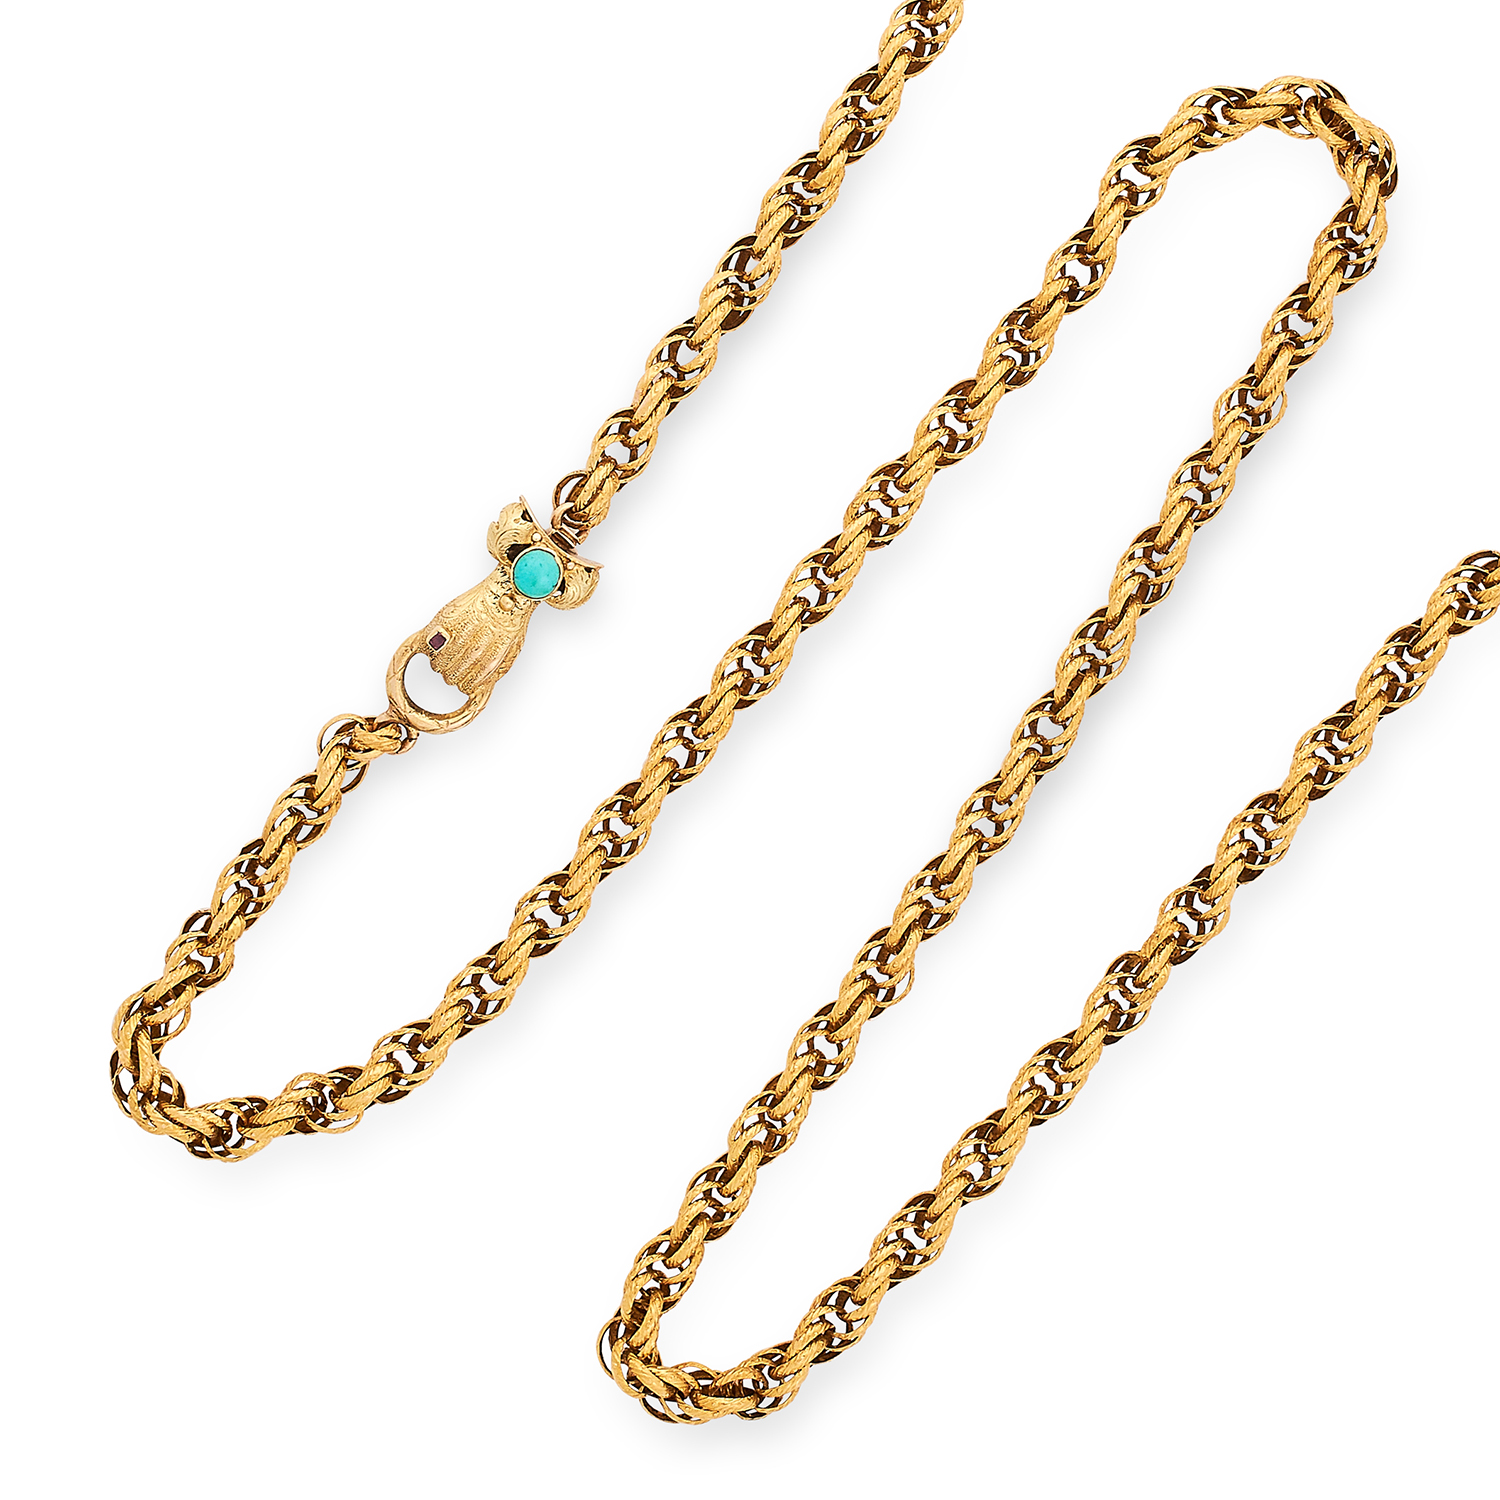 ANTIQUE GUARD CHAIN the hand clasp set with turquoise and a ruby, 78.5cm, 25.3g.